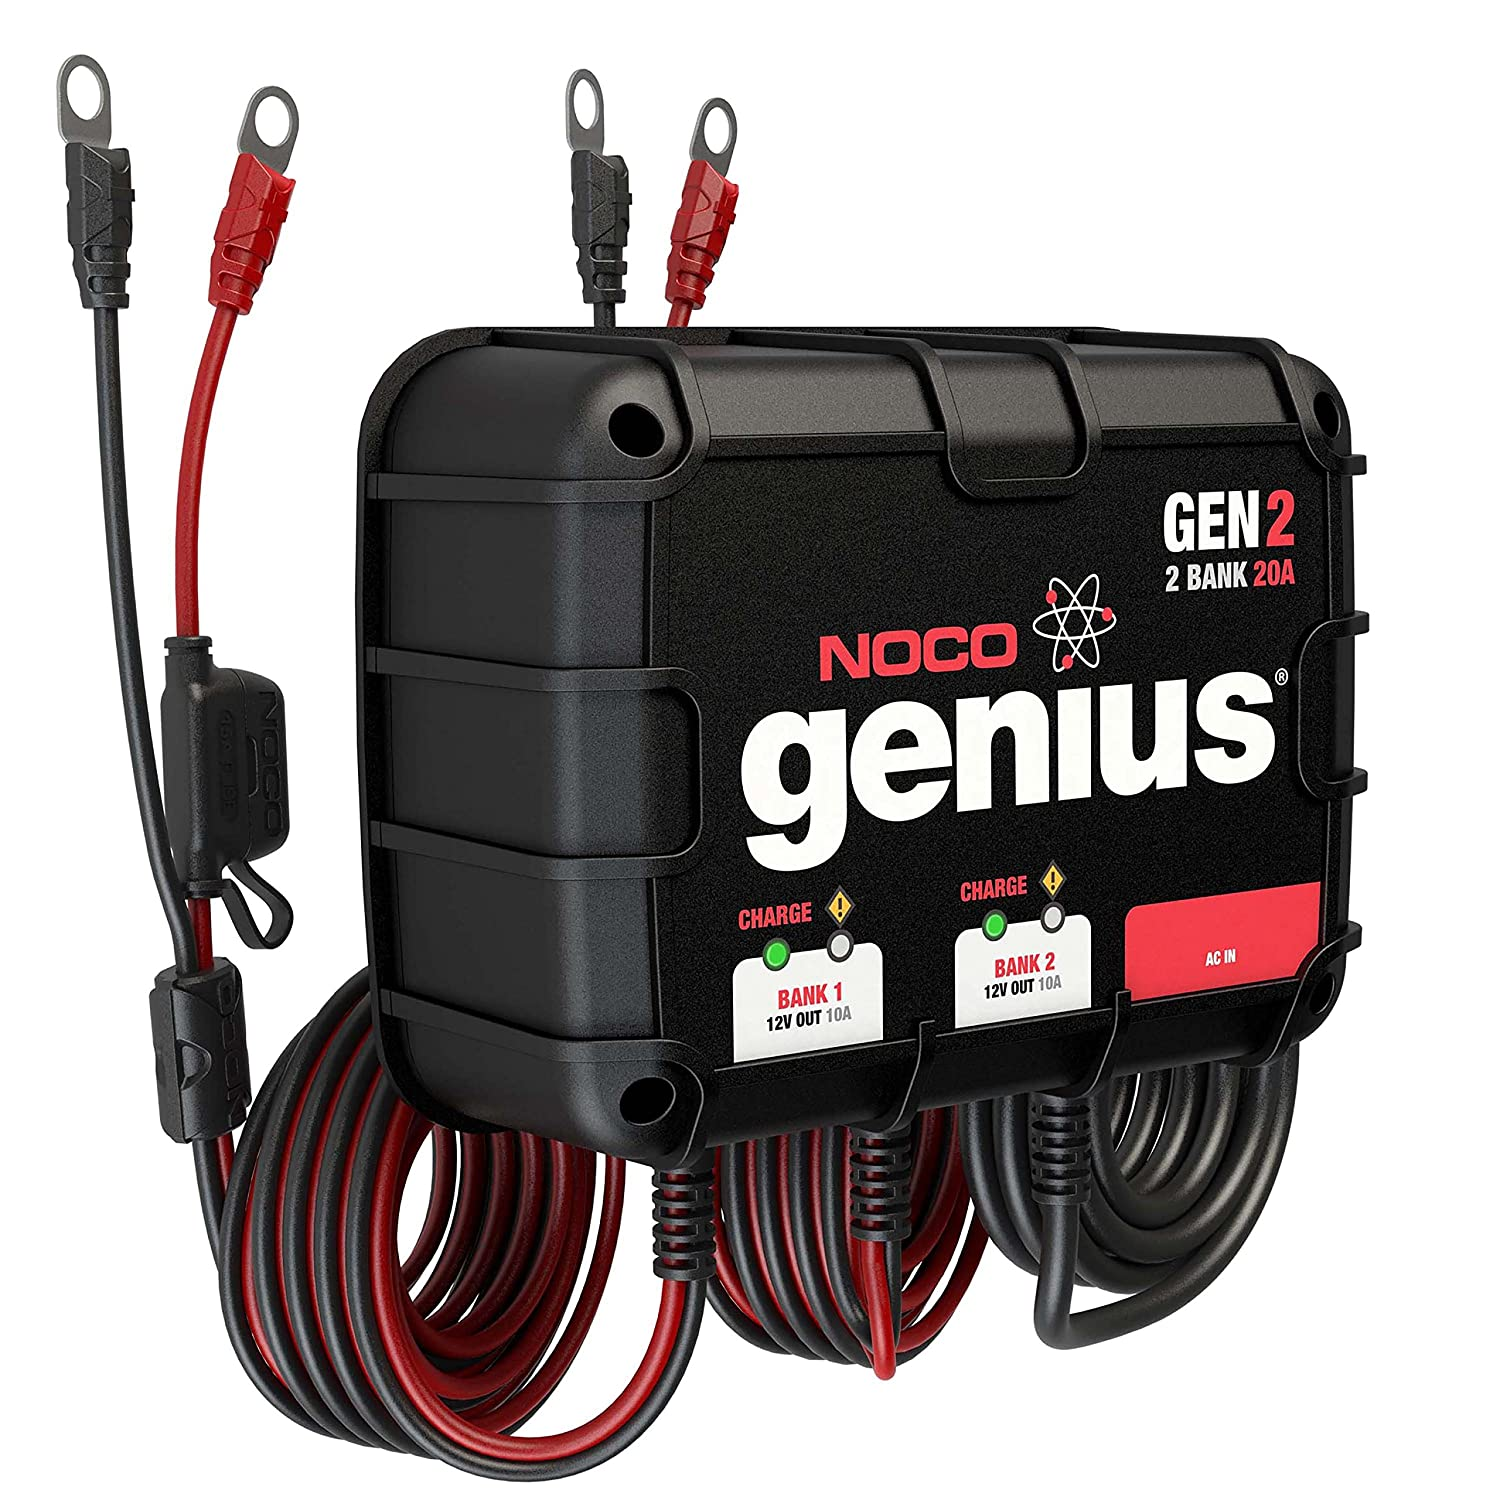 Noco Genius Gen2 20 Amp 2 Bank Waterproof Smart On Board Car Fuse Box Wet Battery Charger Automotive